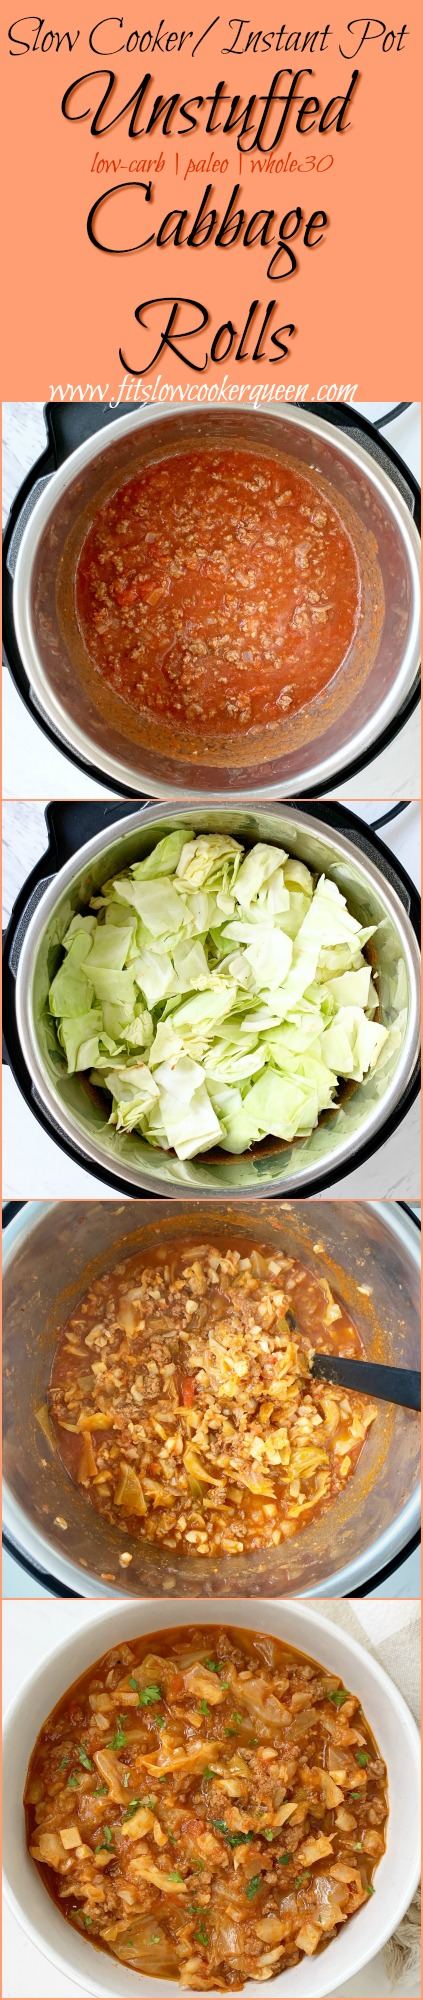 pinterest pin for Slow Cooker_Instant Pot Unstuffed Cabbage Rolls (Low-Carb, Paleo, Whole30)